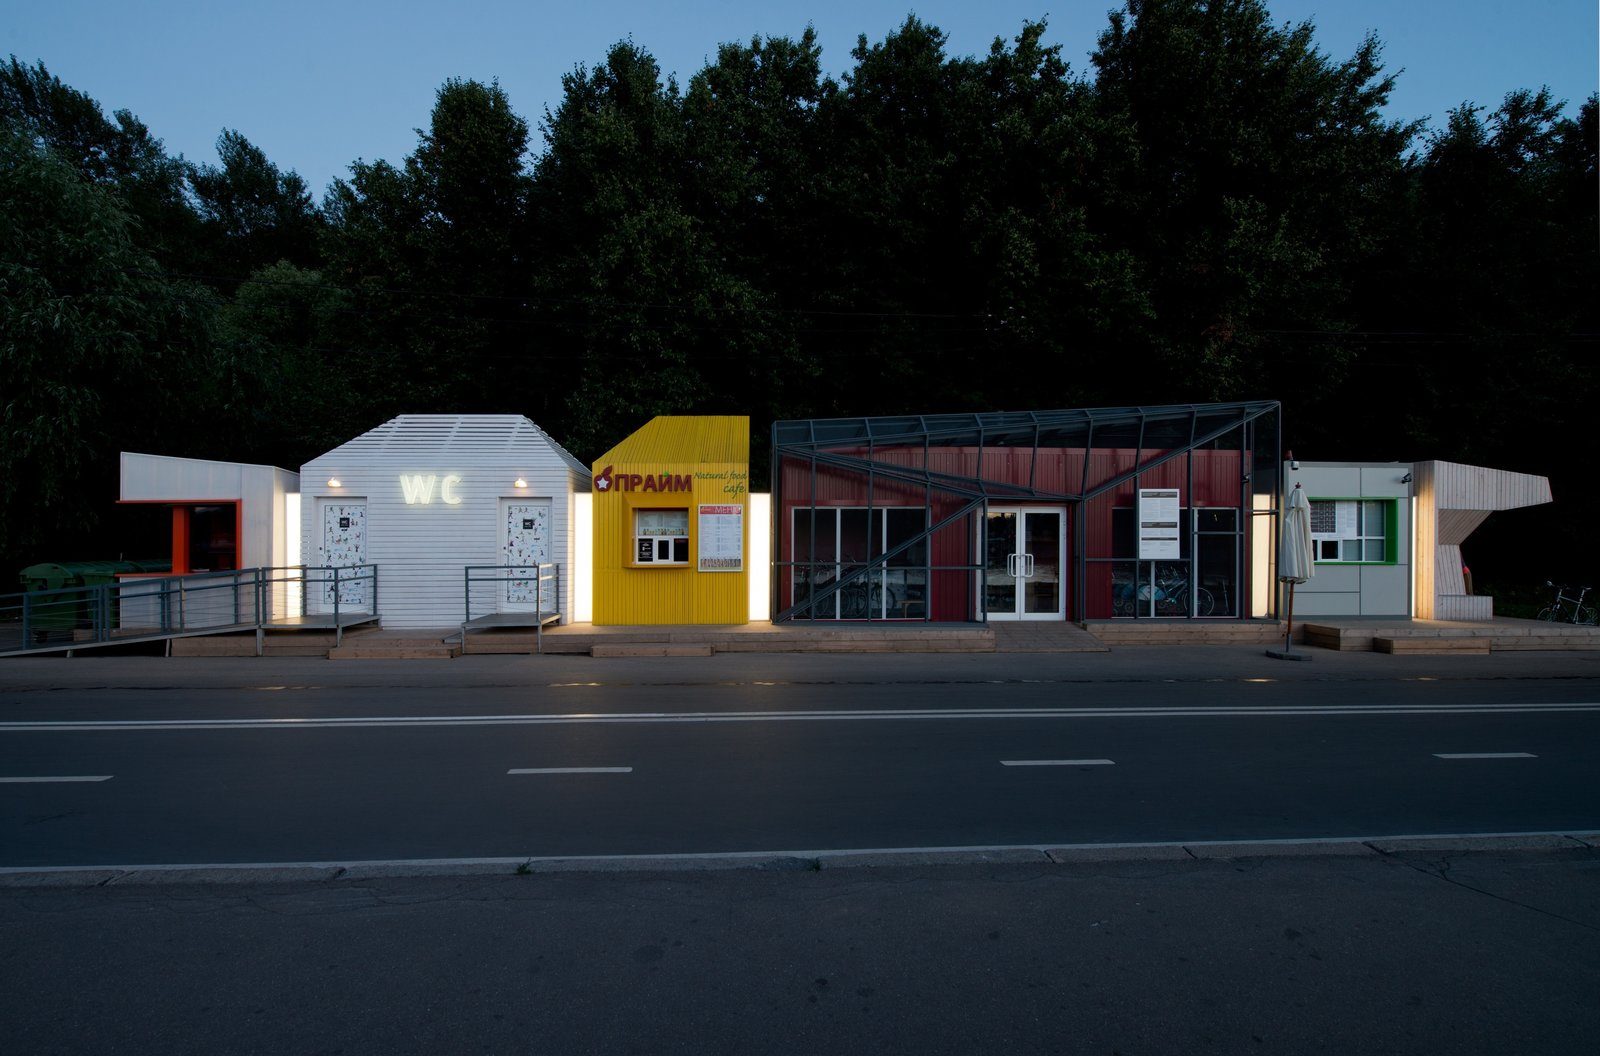 Kiosks in Shells for Sparrow Hills (Wowhaus: Moscow, Russia)  These temporary structures provide a respite to those heading to the former Lenin Hills area of Moscow.  Inspiring Small Space Projects Around the World by Patrick Sisson